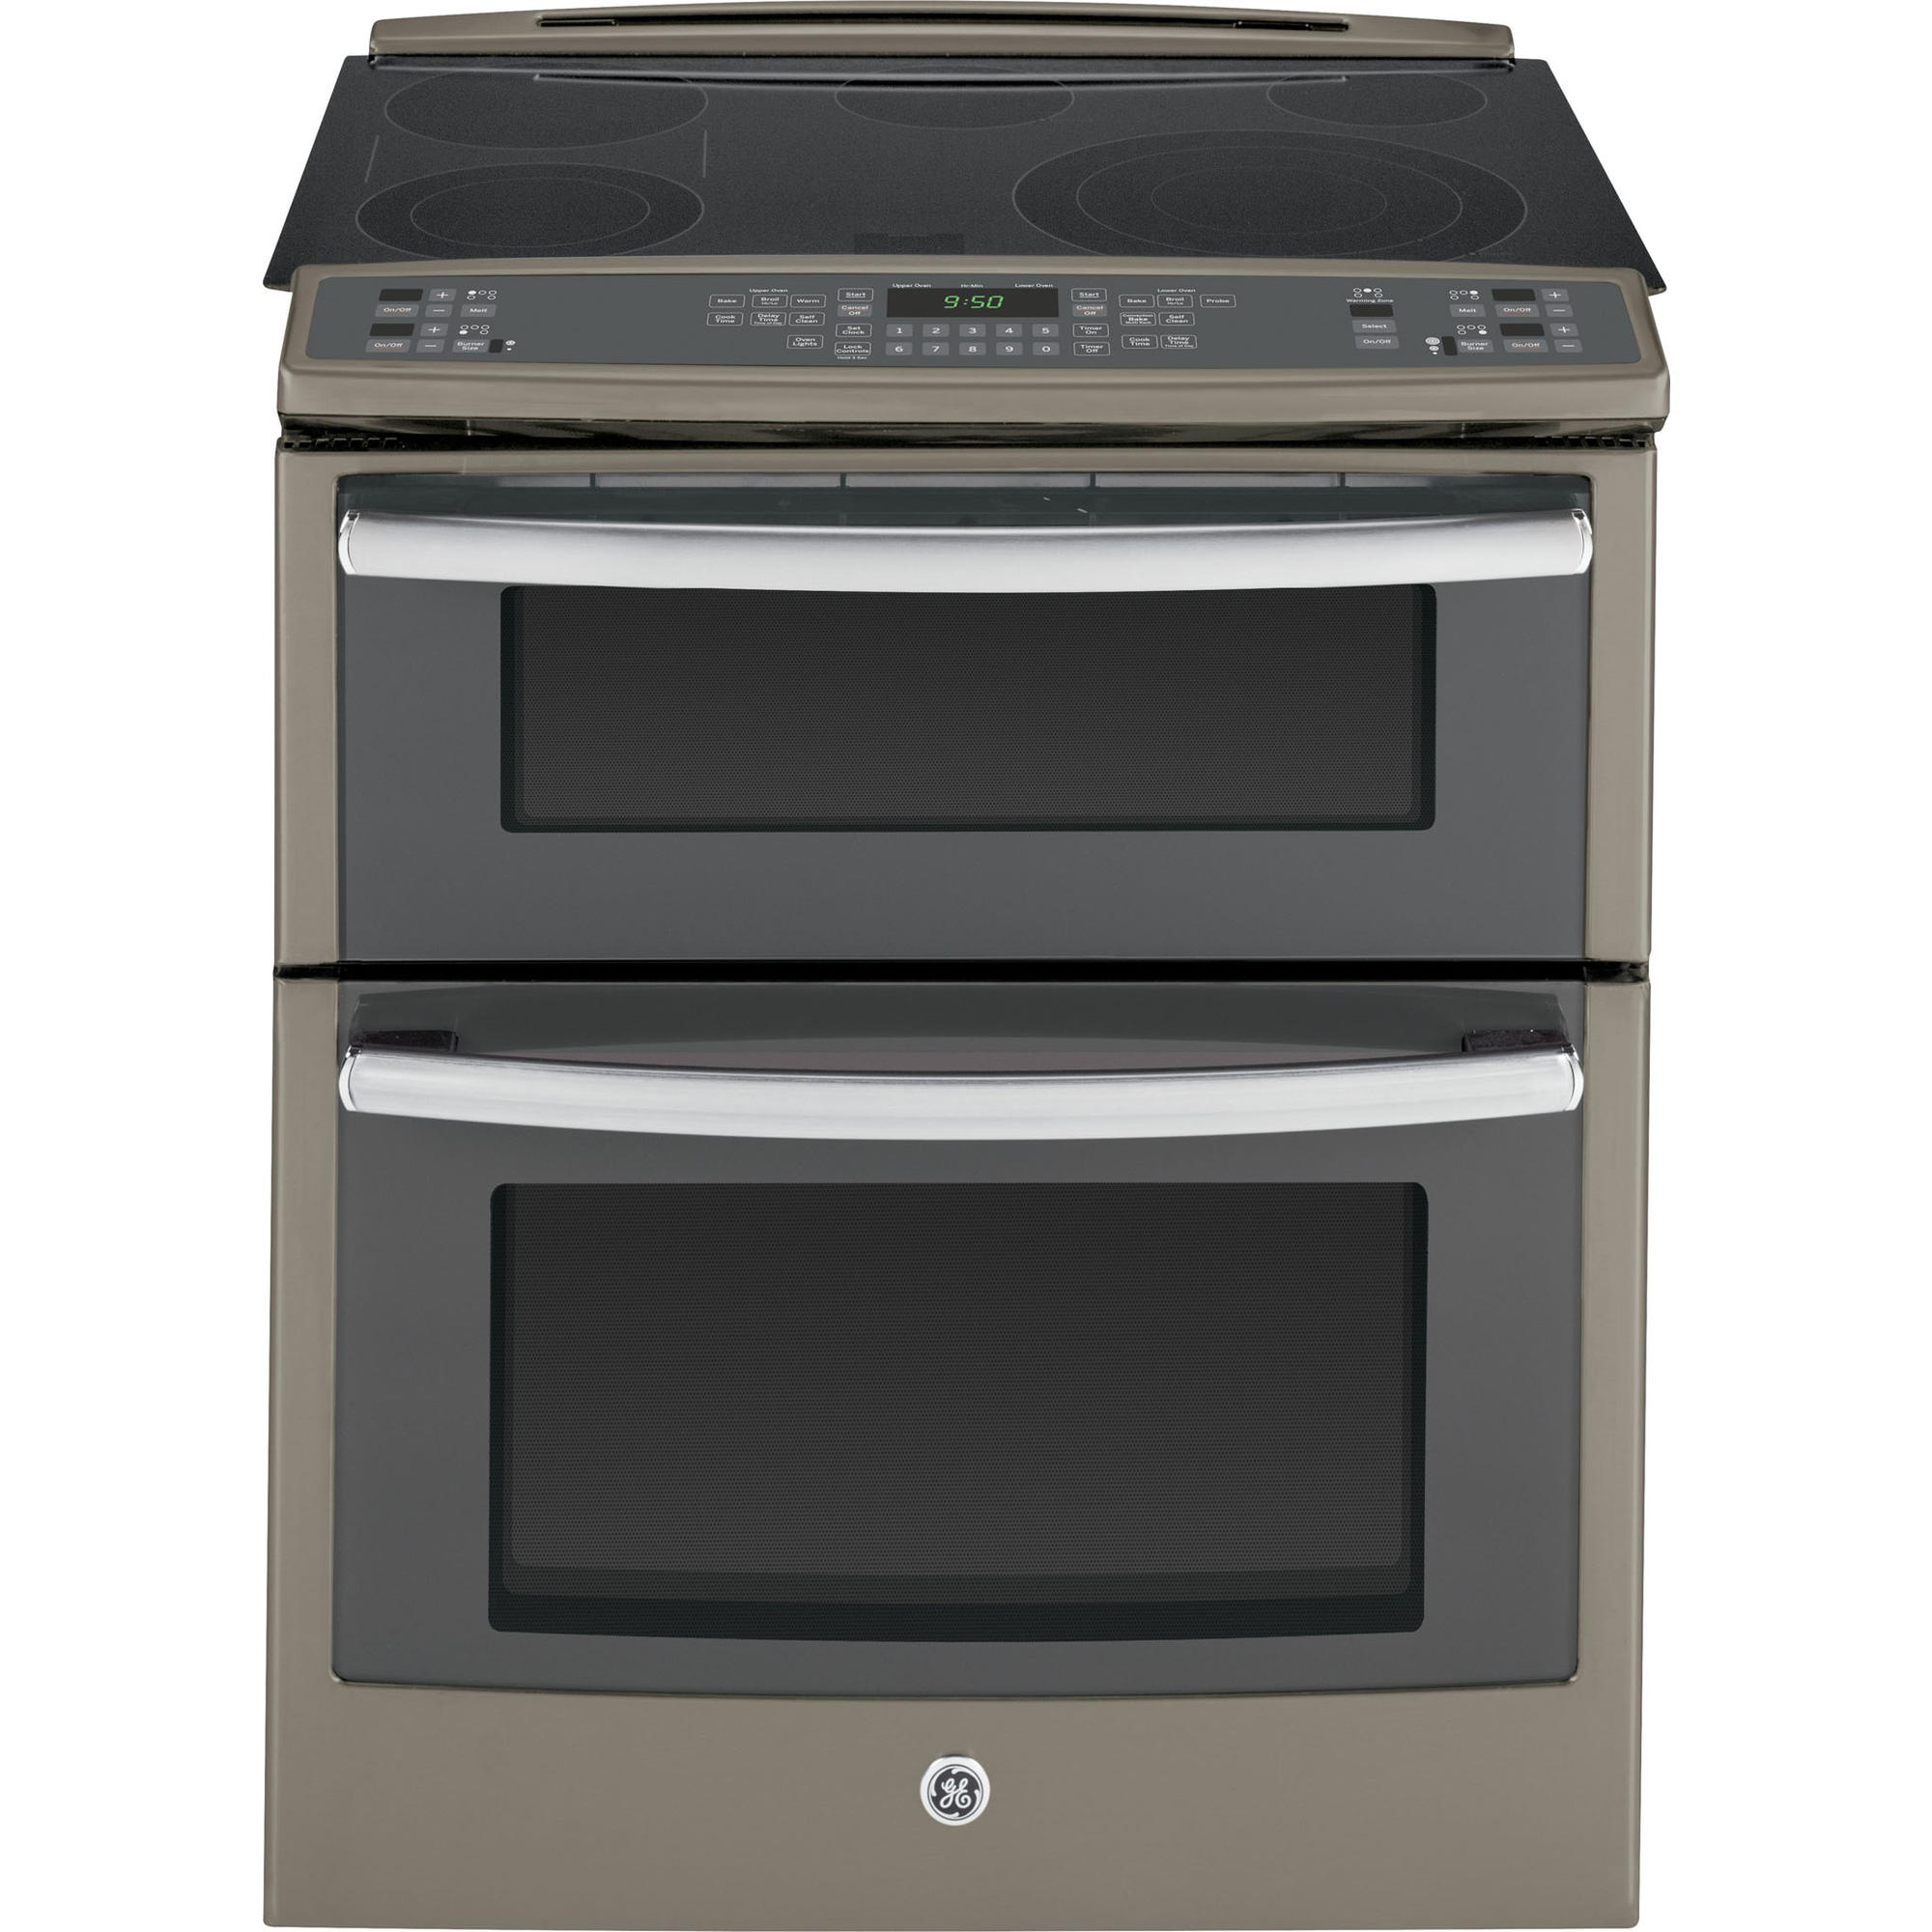 GE Profile™ Series 4.4 cu. ft. Slide-In Electric Range w/ Convection Double Oven - Slate